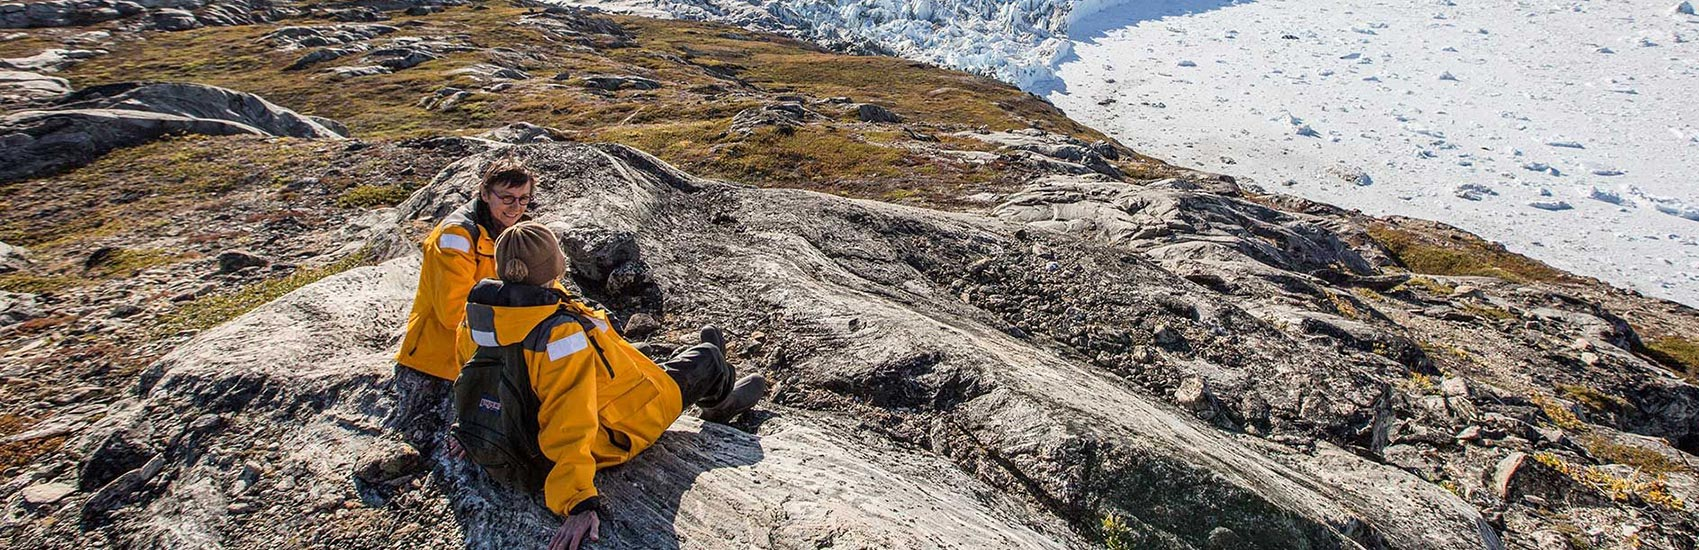 Arctic 2023 Early Booking Savings with Quark Expeditions 4